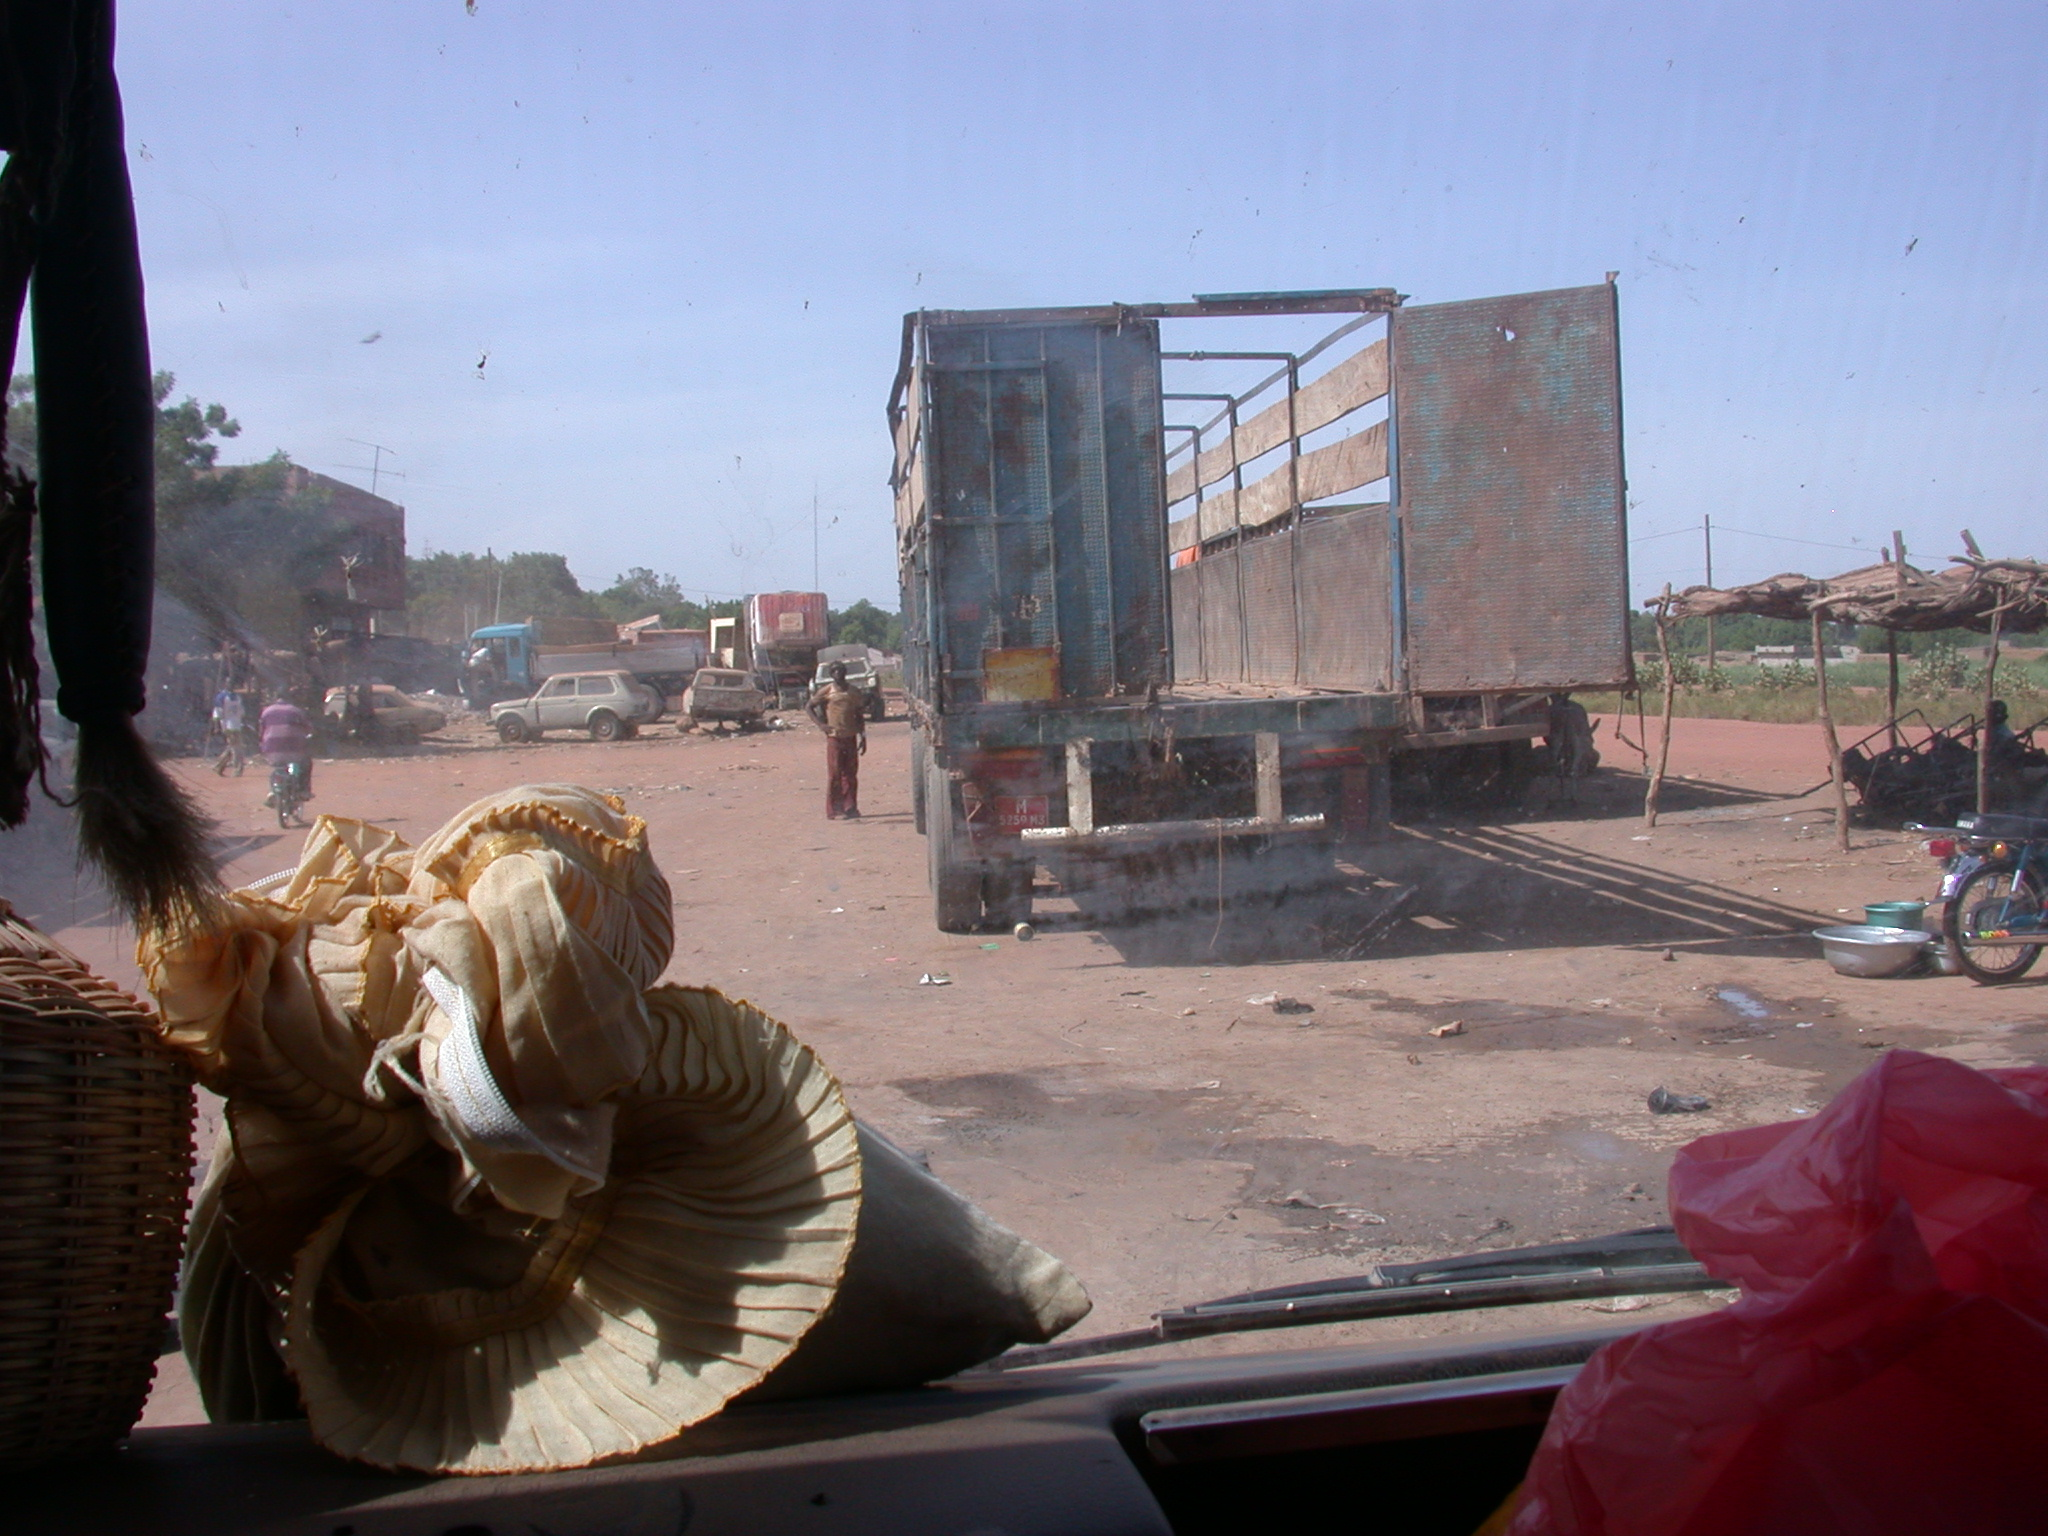 Truck and Driver in Nioro, Mali